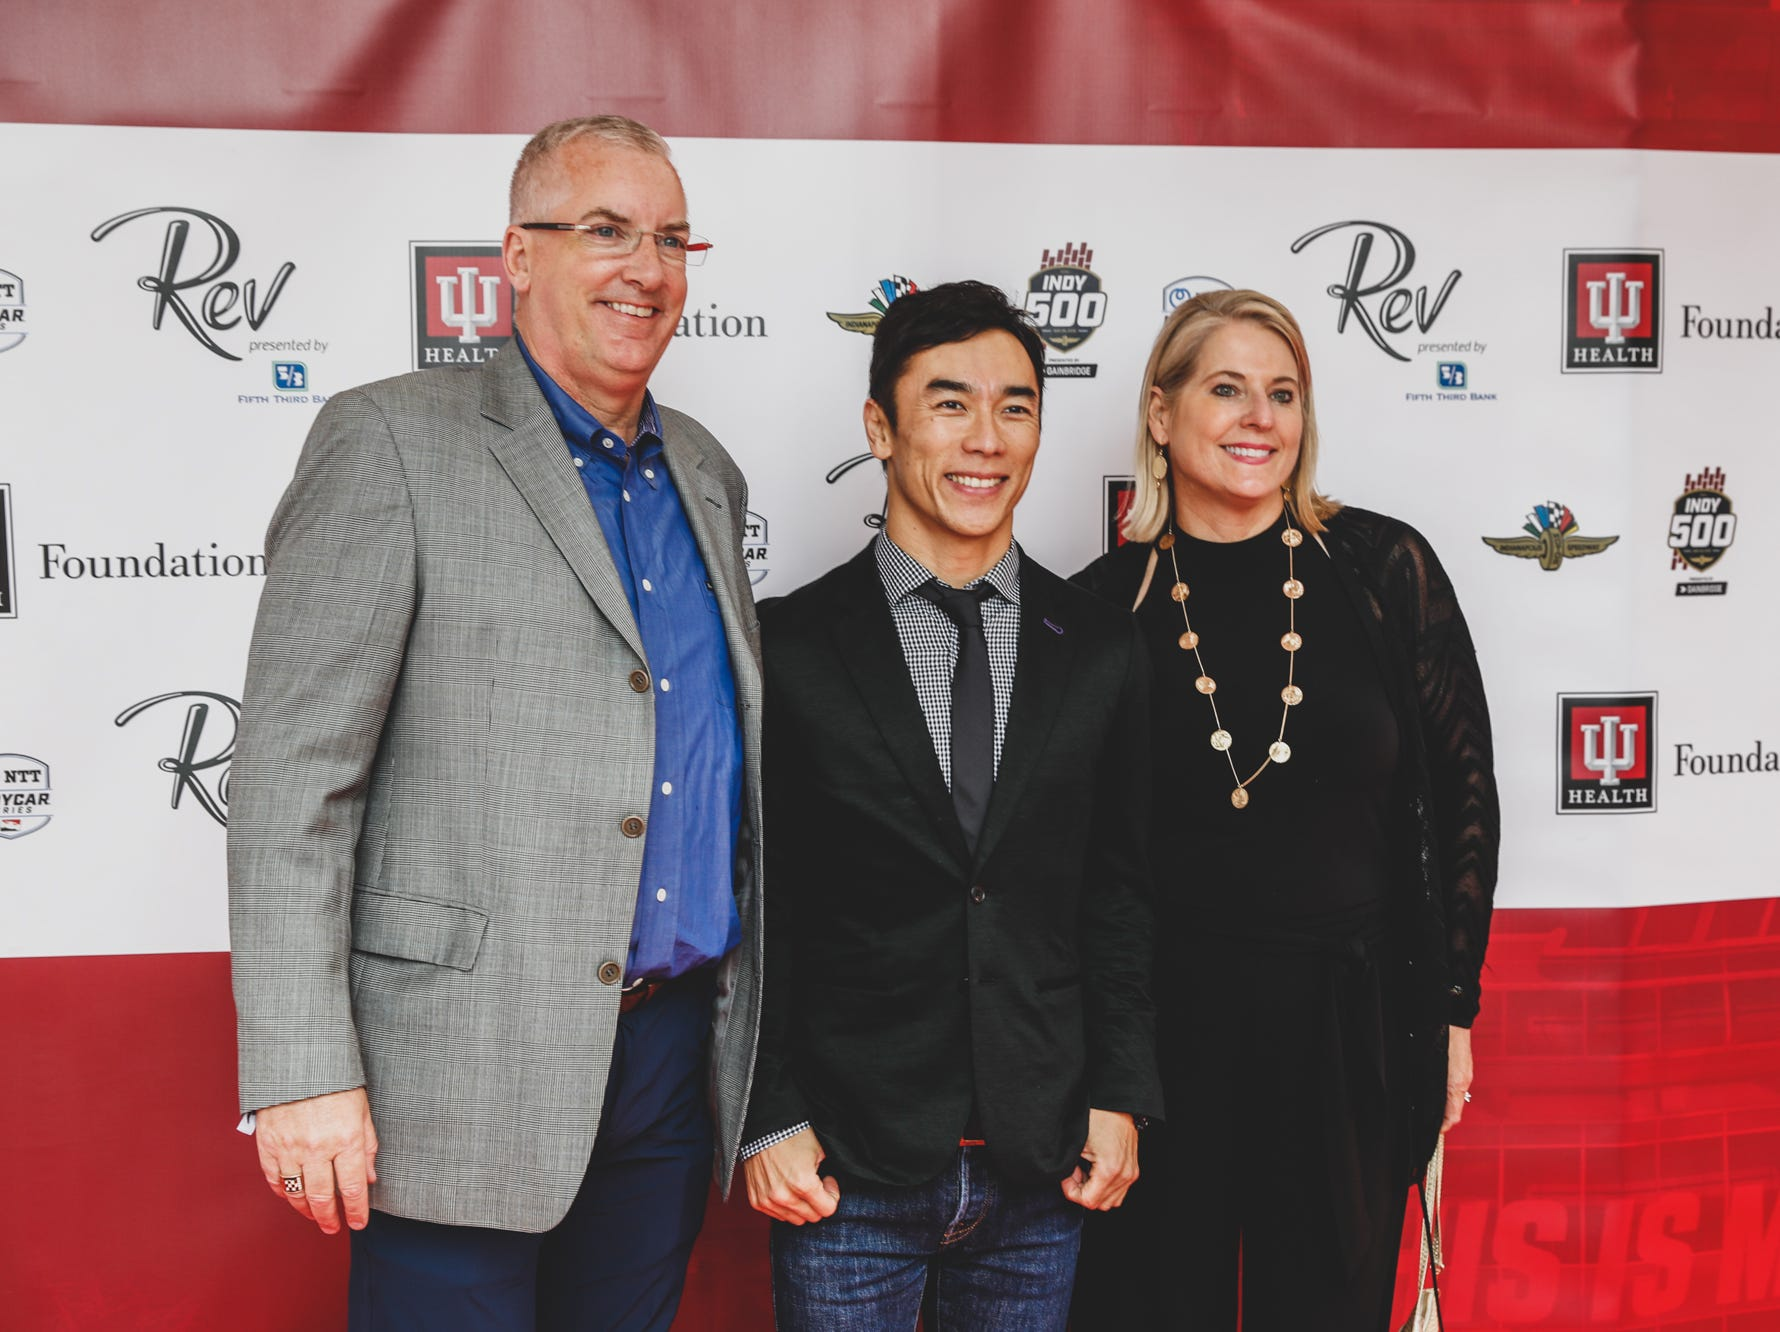 Takuma Sato and guests attend the Rev Indy fundraiser, held at the Indianapolis Motor Speedway on Saturday, May 4, 2019. Funds raised support the IU Health Foundation statewide and the IU Health Emergency Medical Center at IMS.